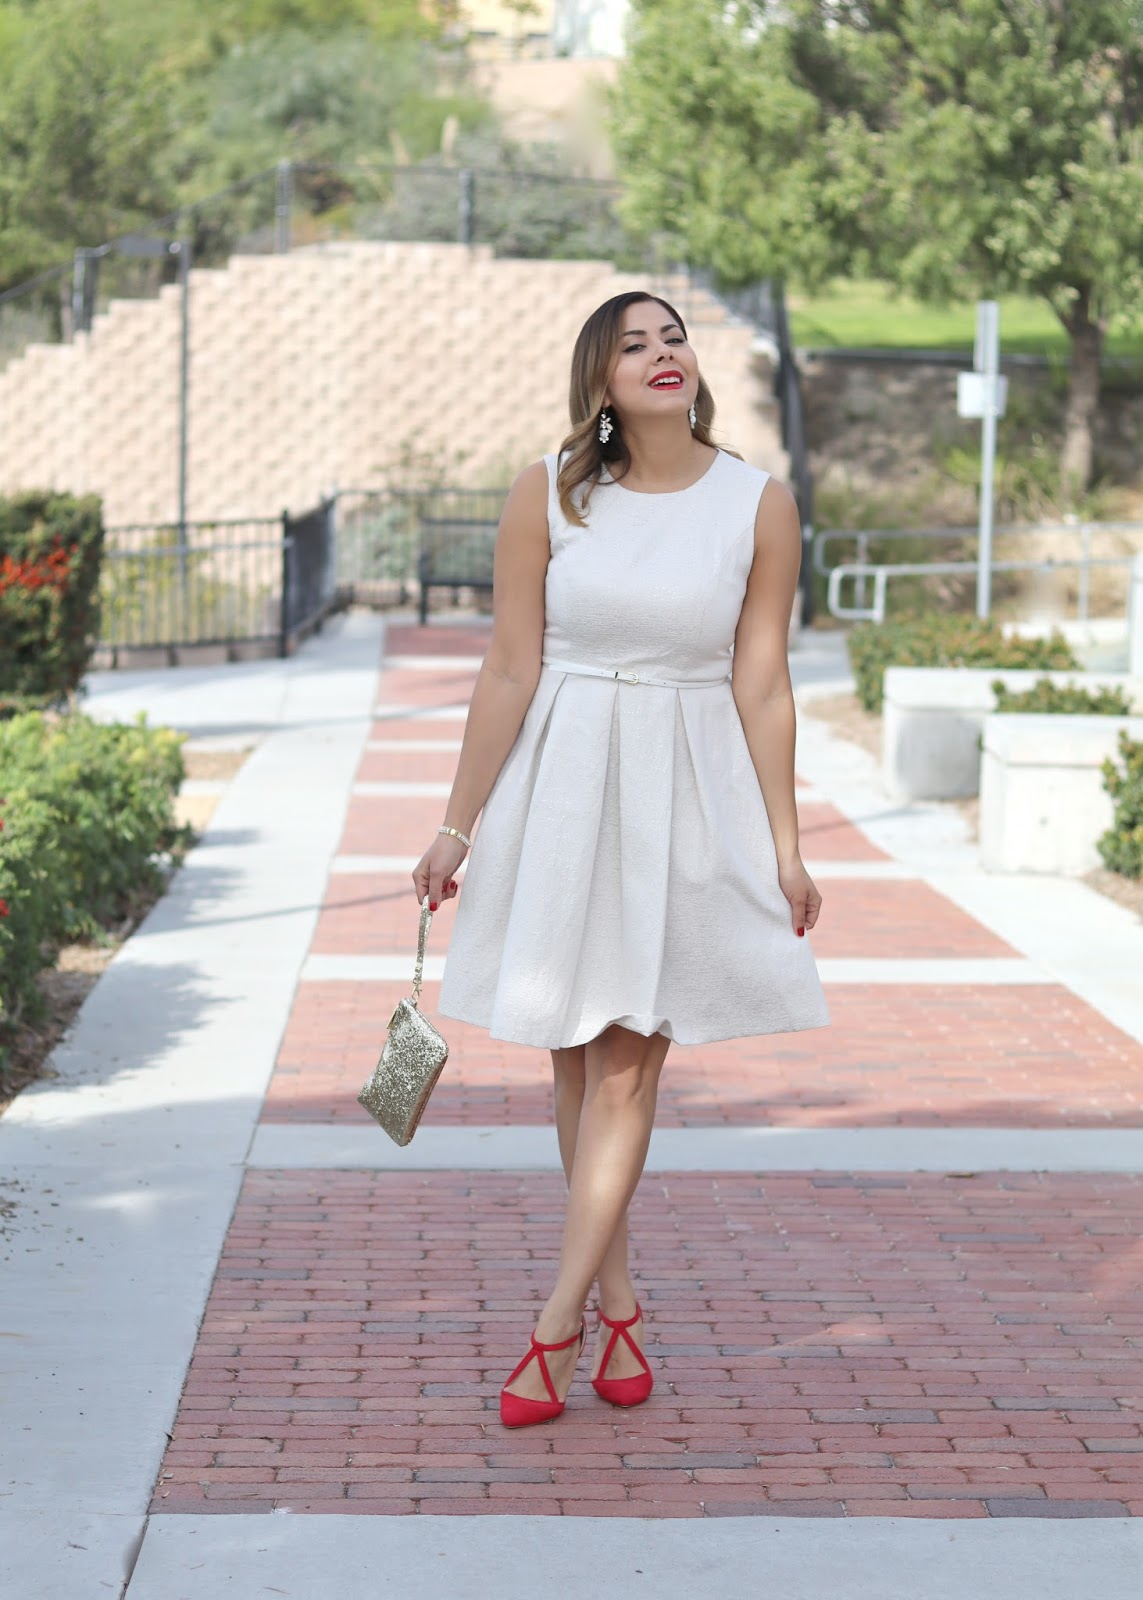 Holiday Outfit 2016, Metallic Dress, Red LIpstick